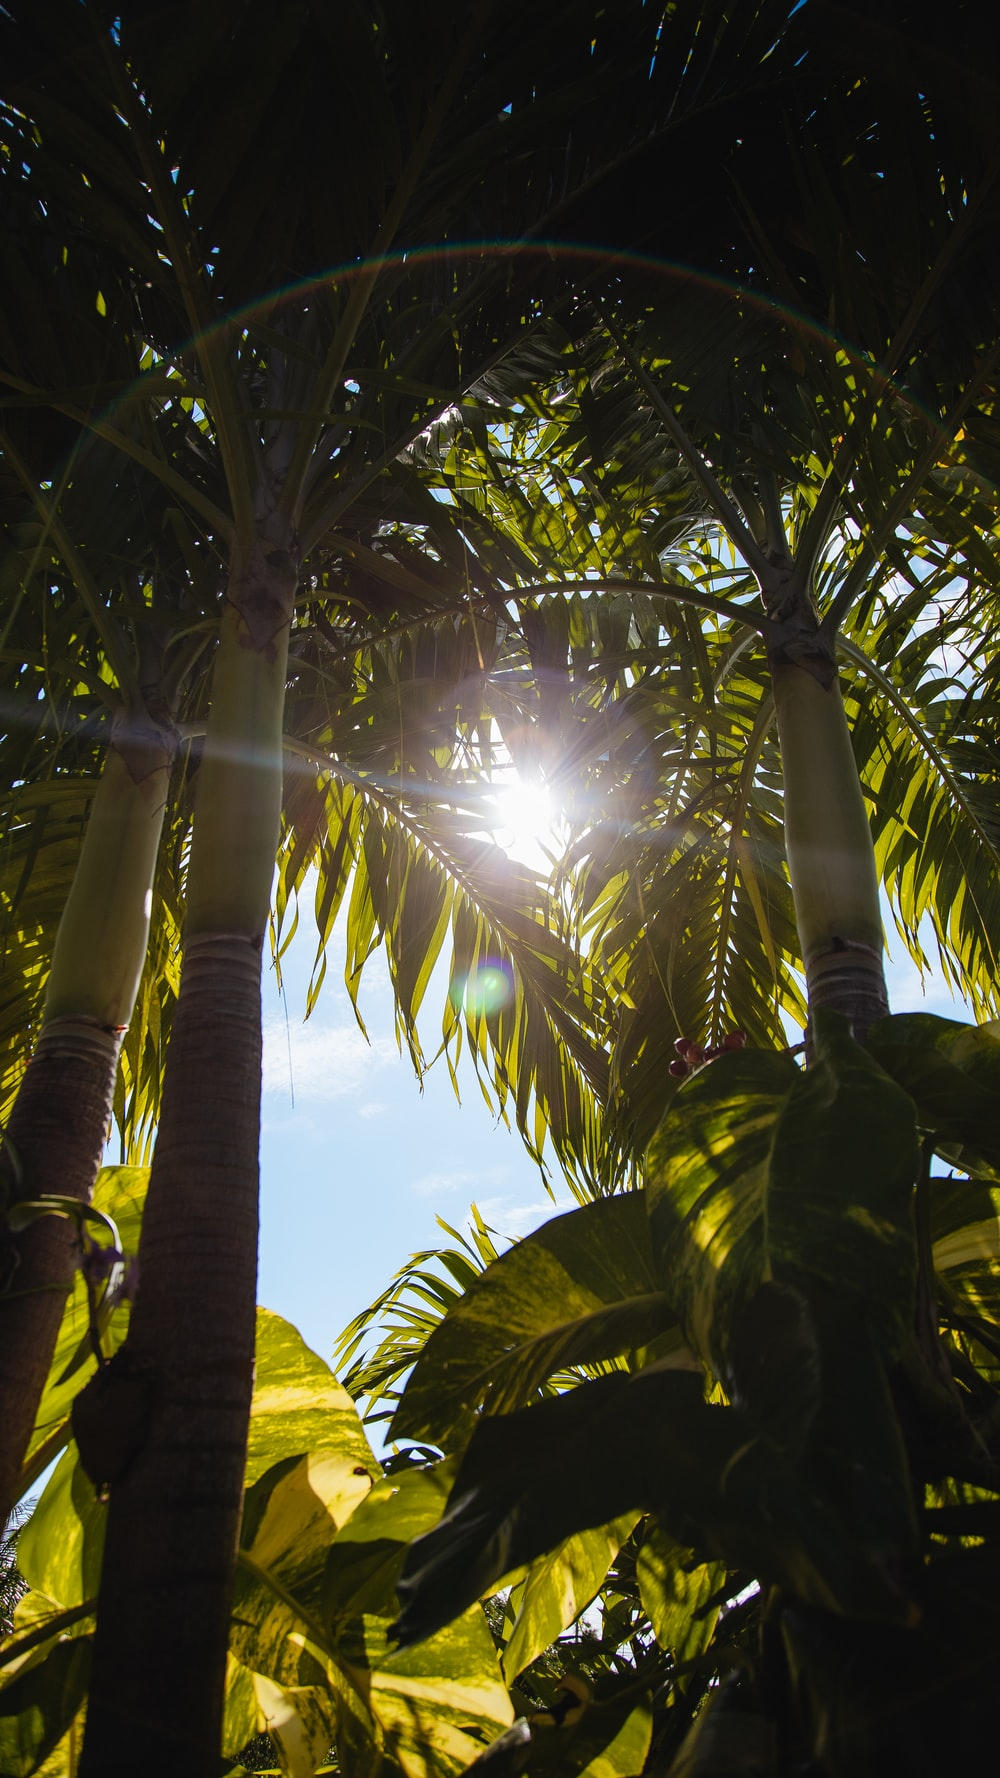 green coconut tree under blue sky during daytime